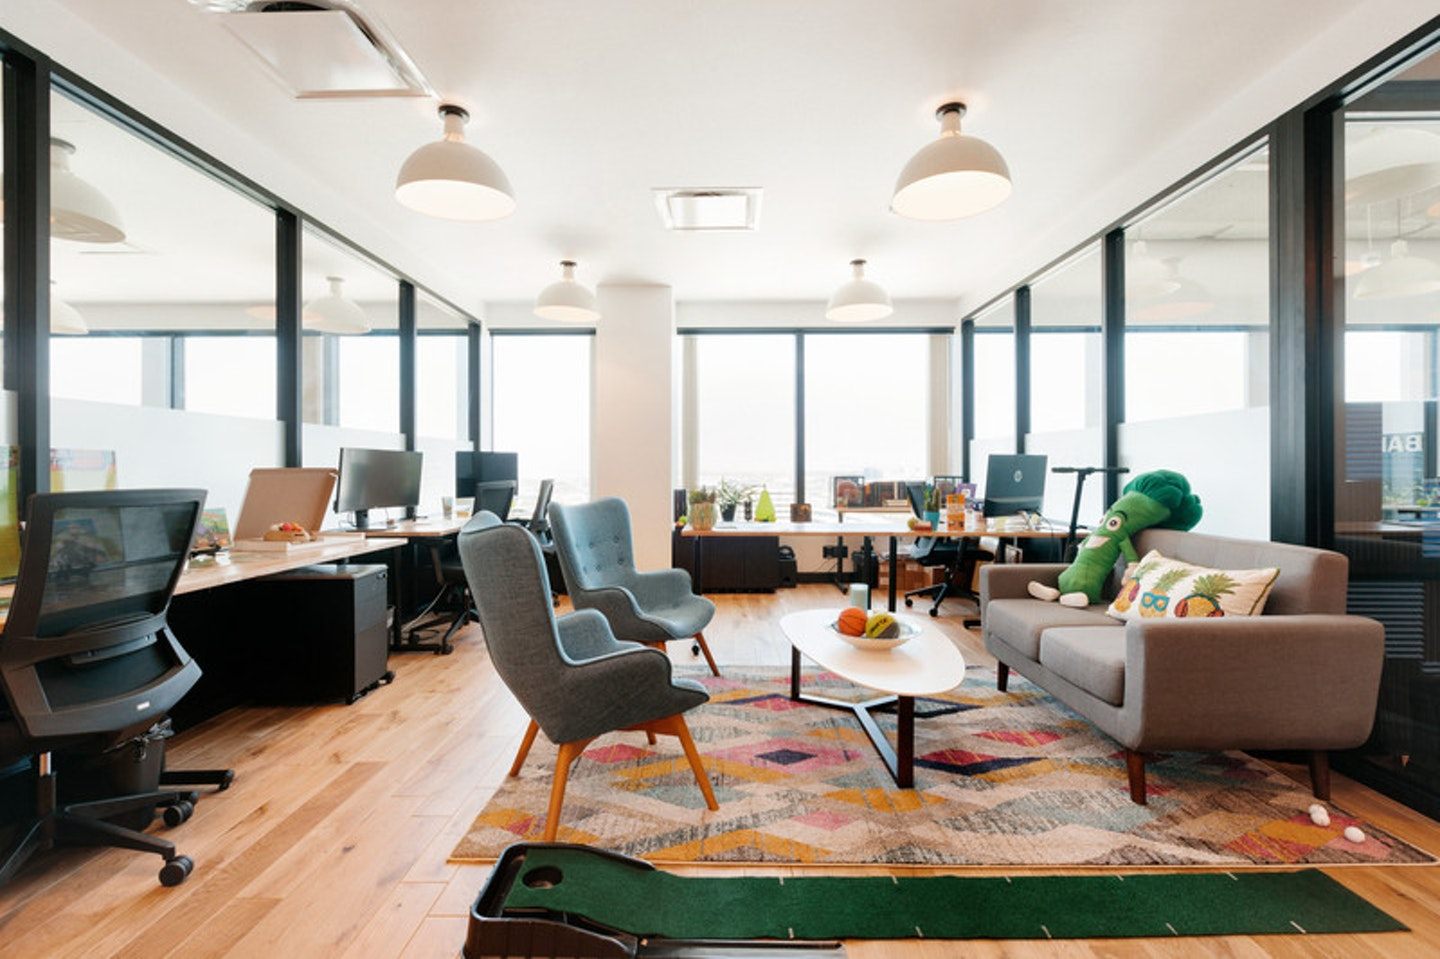 Example of another WeWork building